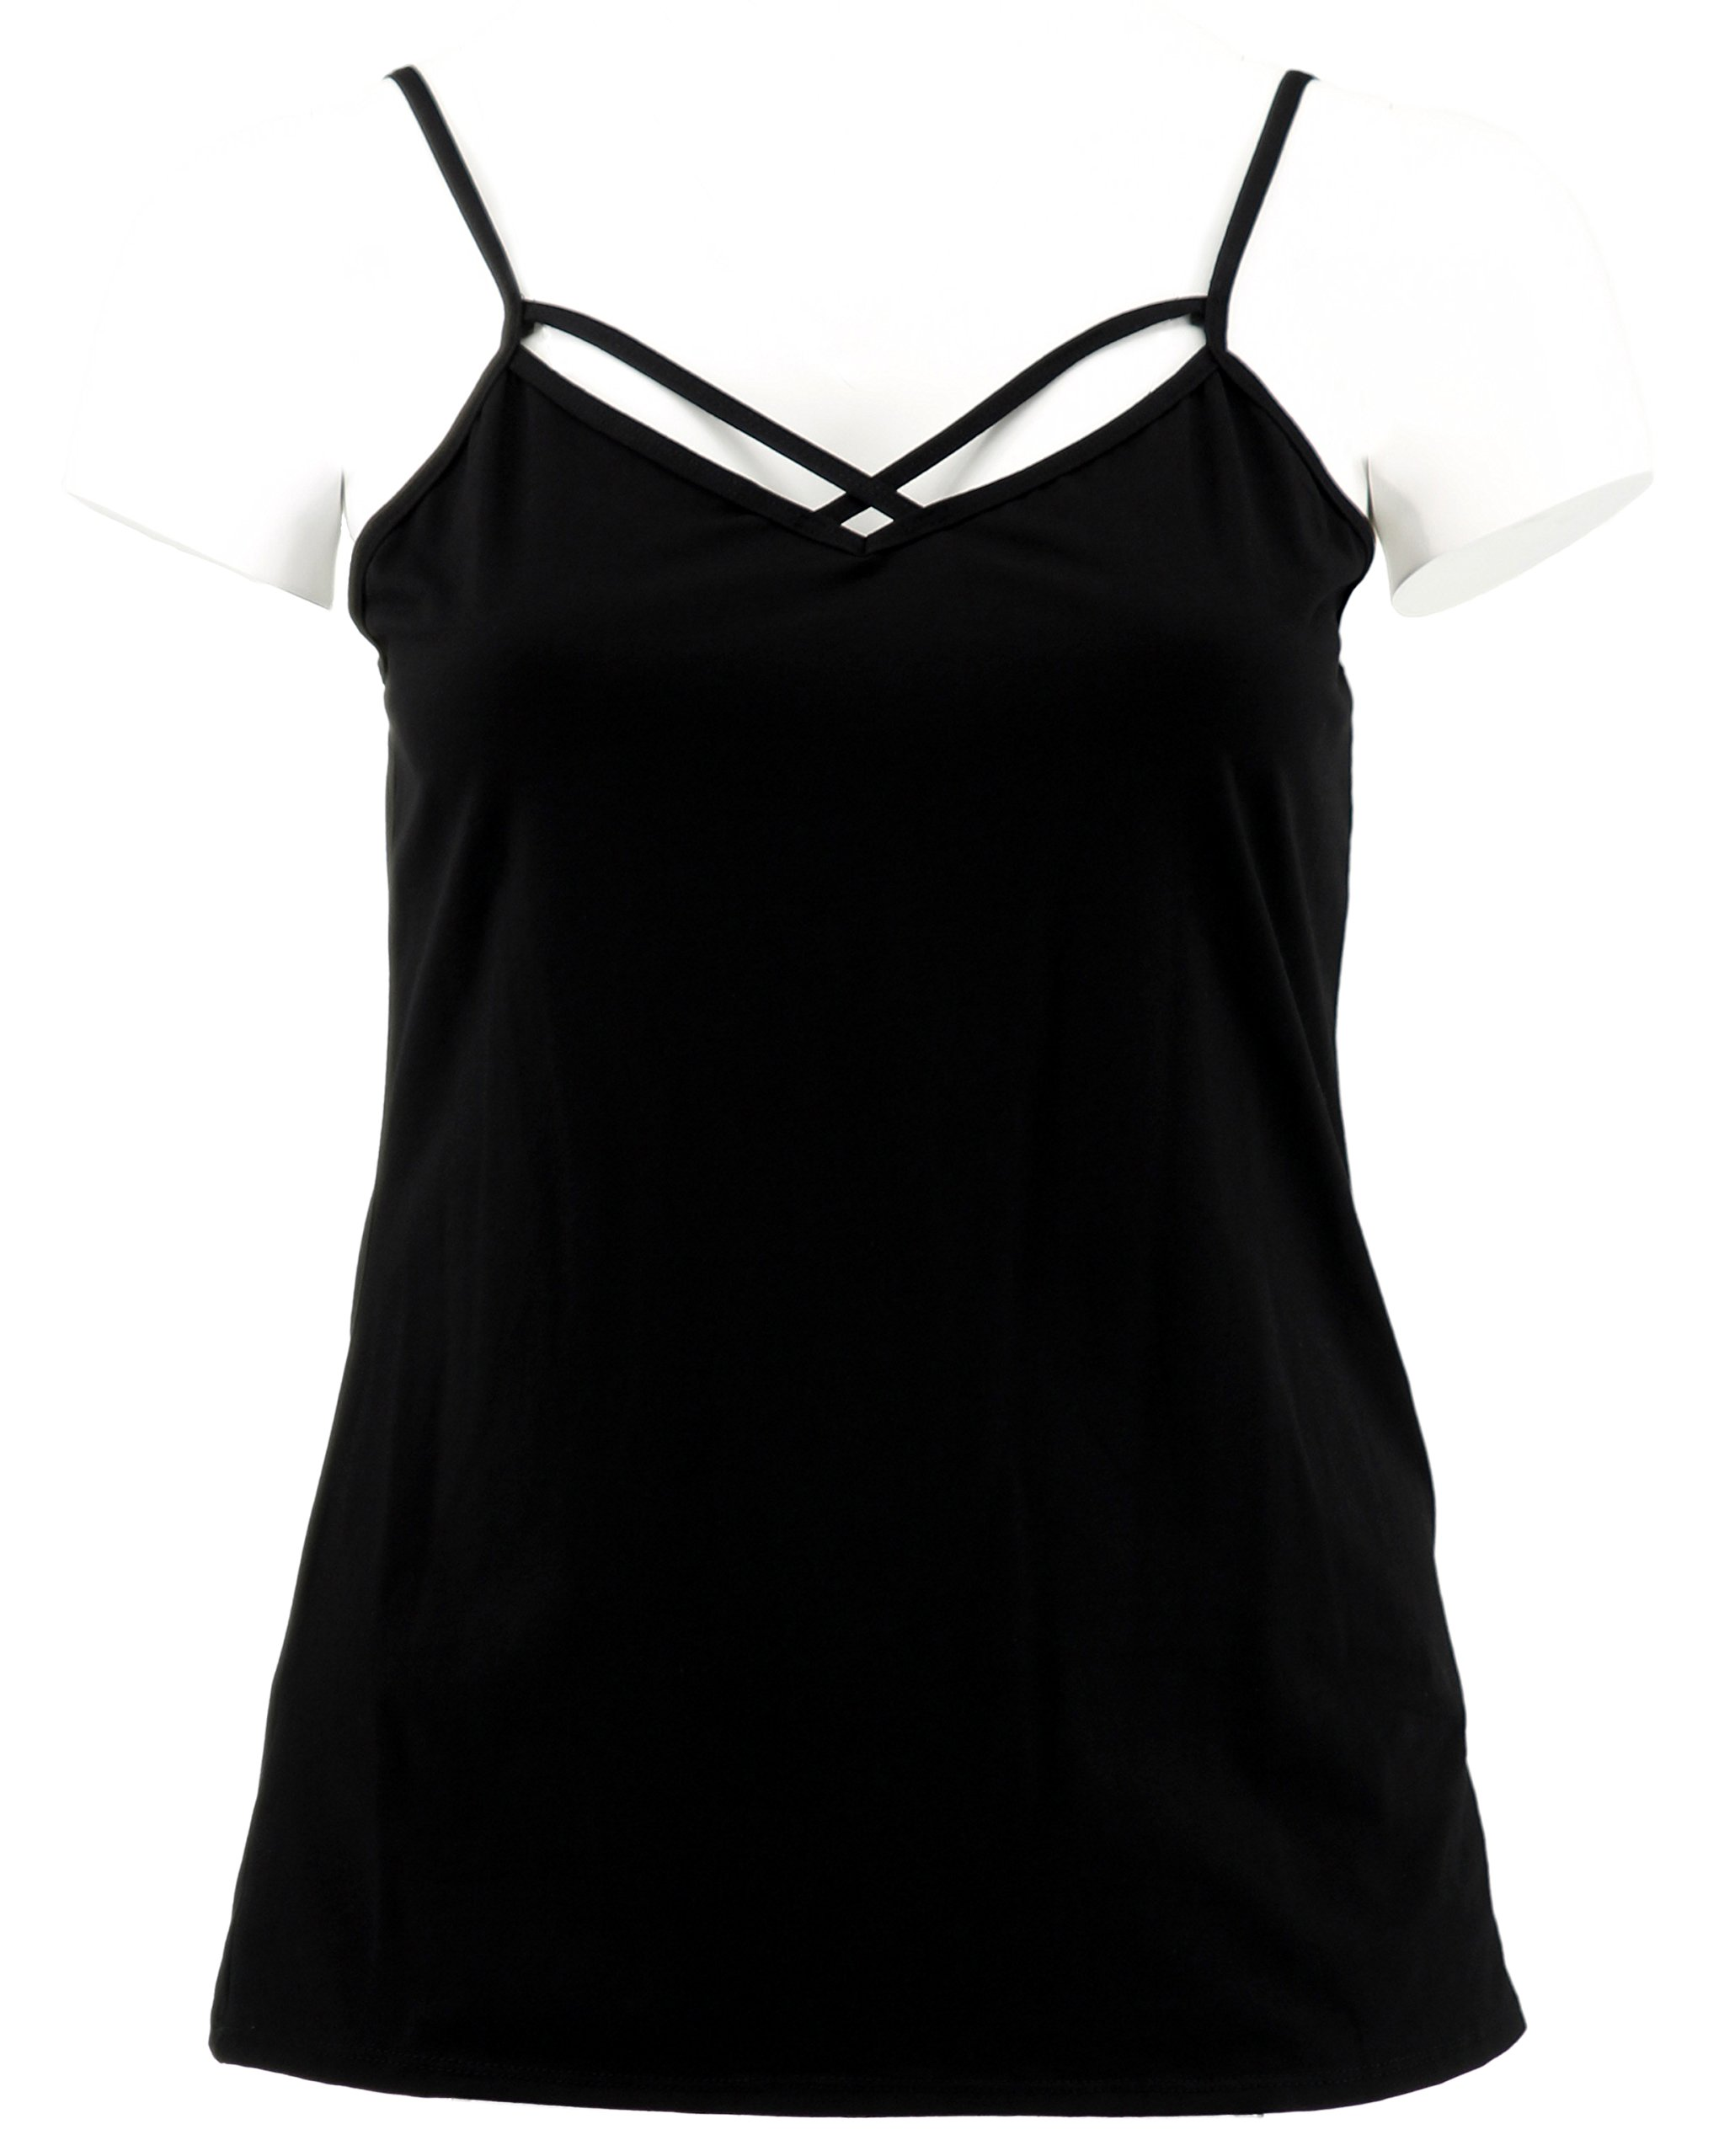 Stylish Criss-Cross Spaghetti Strap Cami (3X, Black)